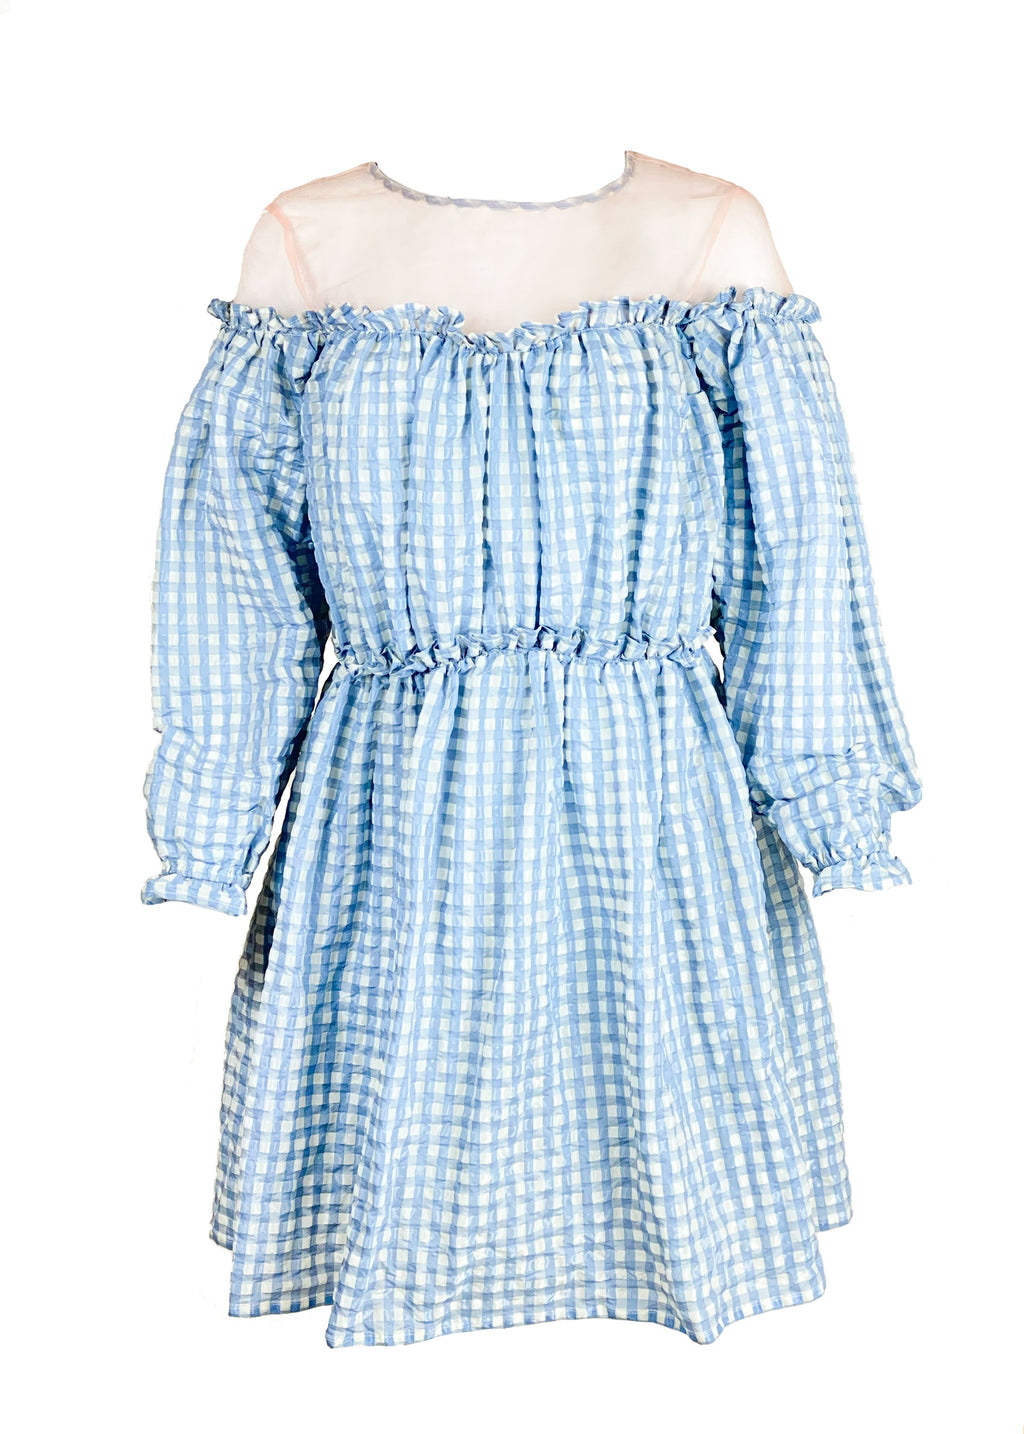 Rent Shrimps Blue & White Gingham Mesh Mini Dress from Rotaro